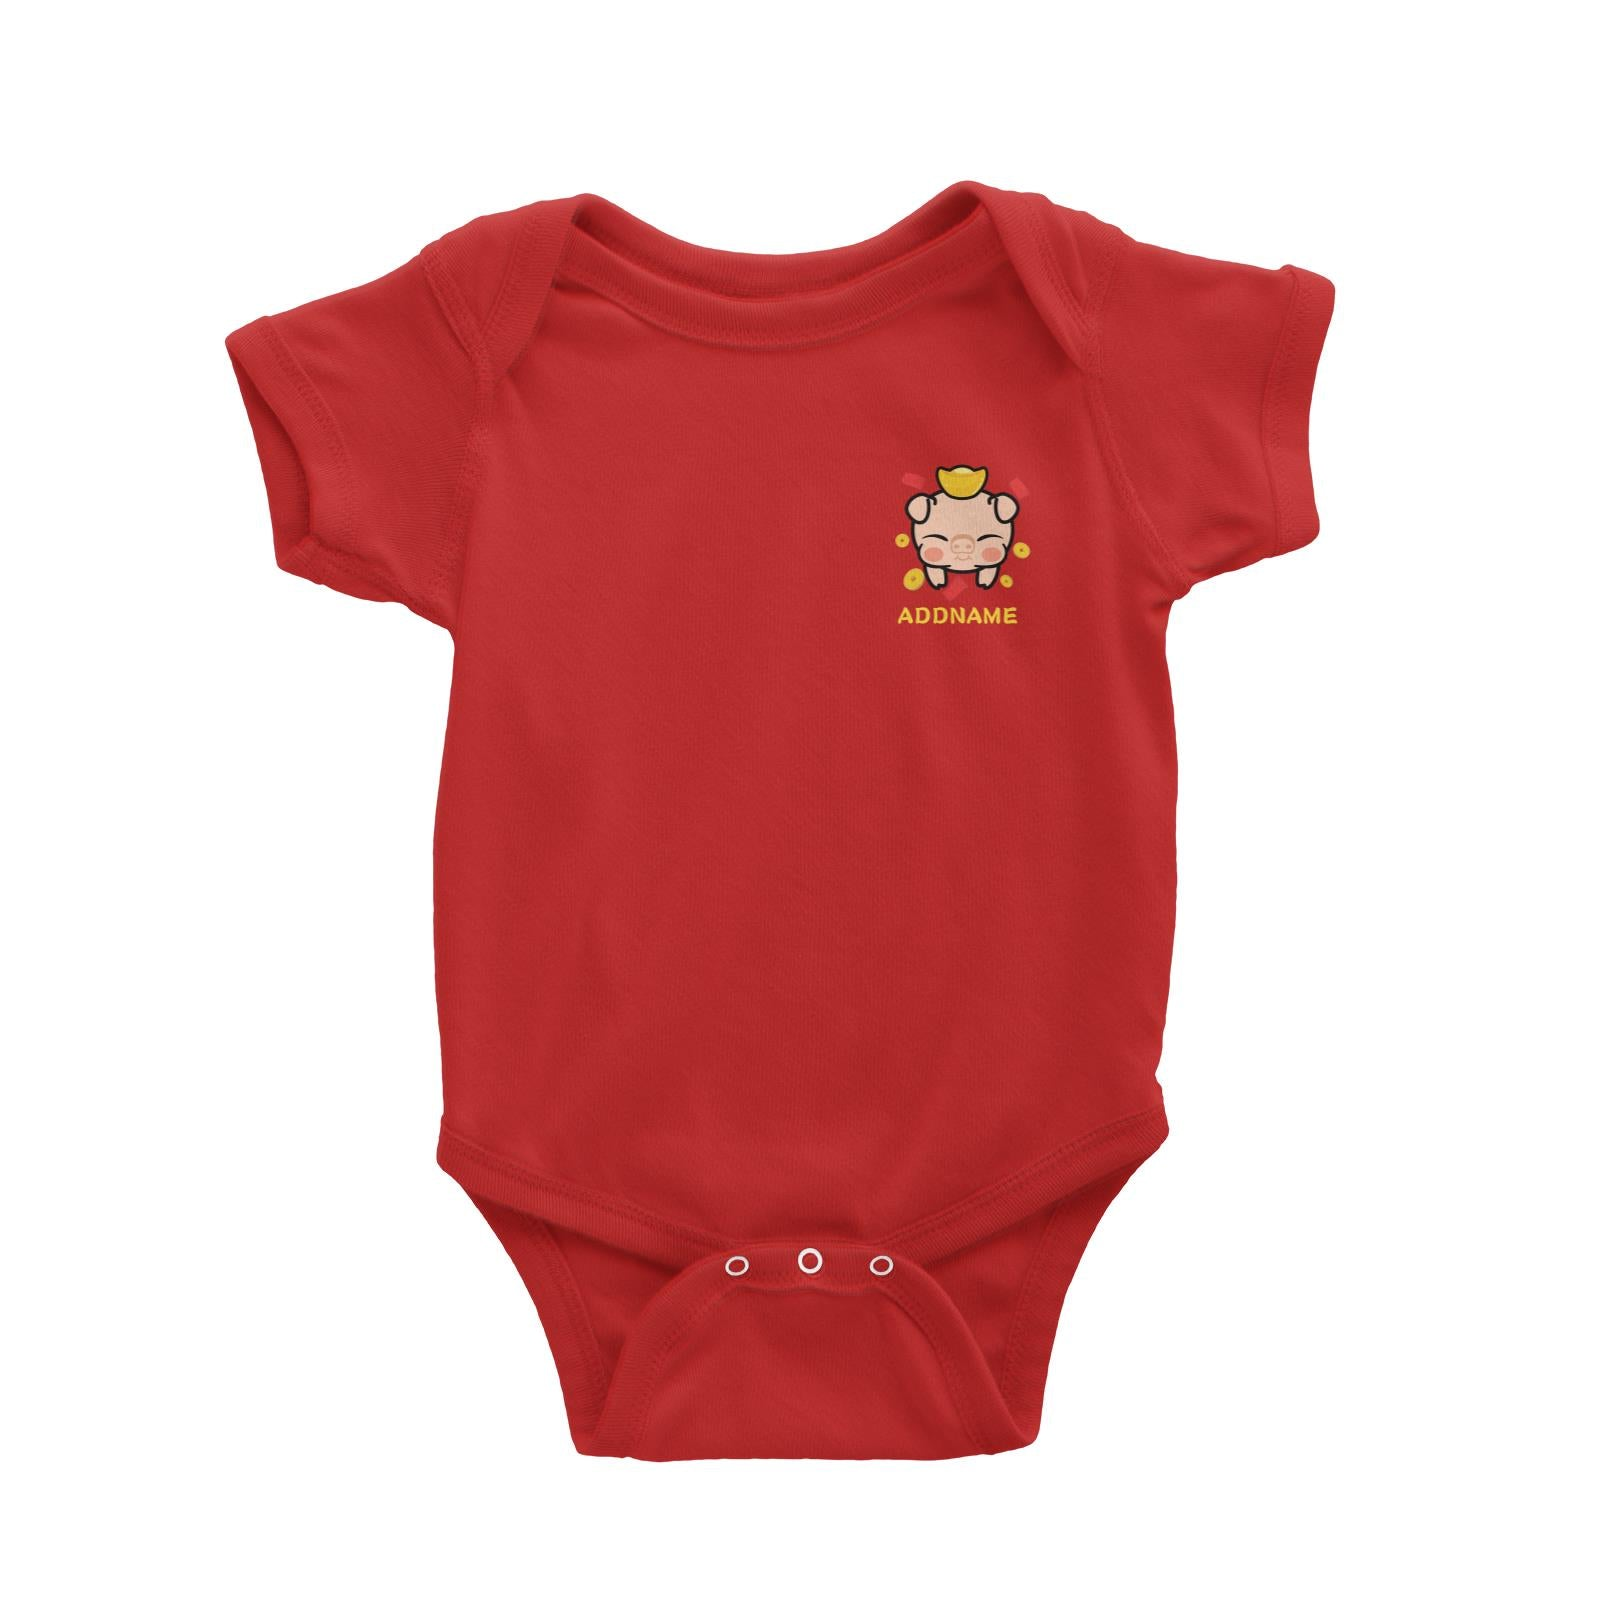 Prosperity Pig Baby Head with Gold Pocket Design Baby Romper